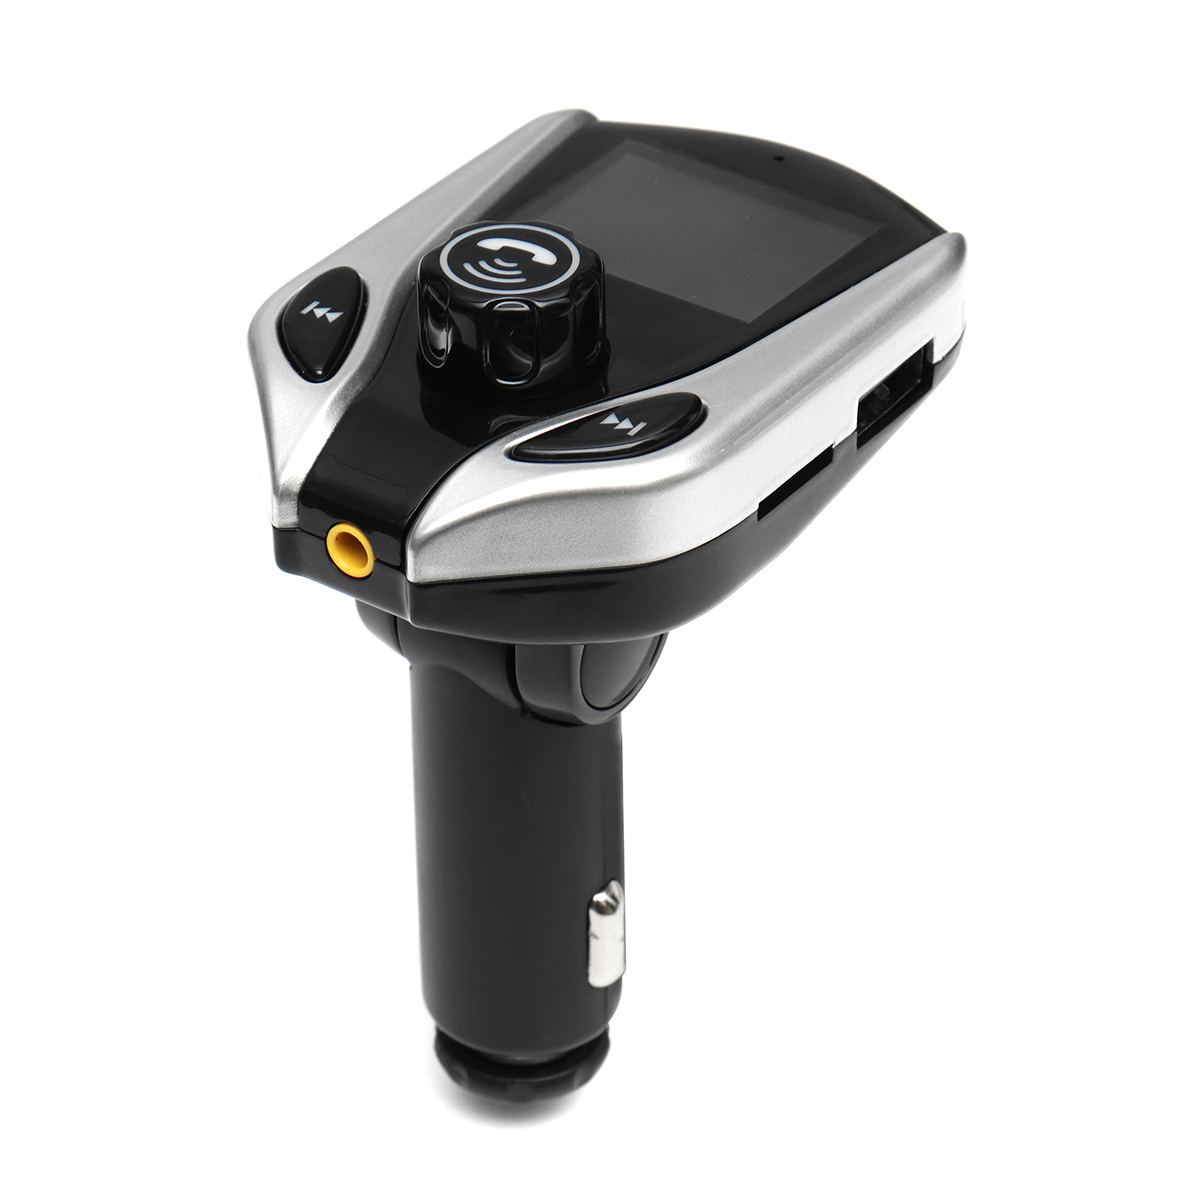 x8 bluetooth handsfree wireless auto car fm transmitter. Black Bedroom Furniture Sets. Home Design Ideas